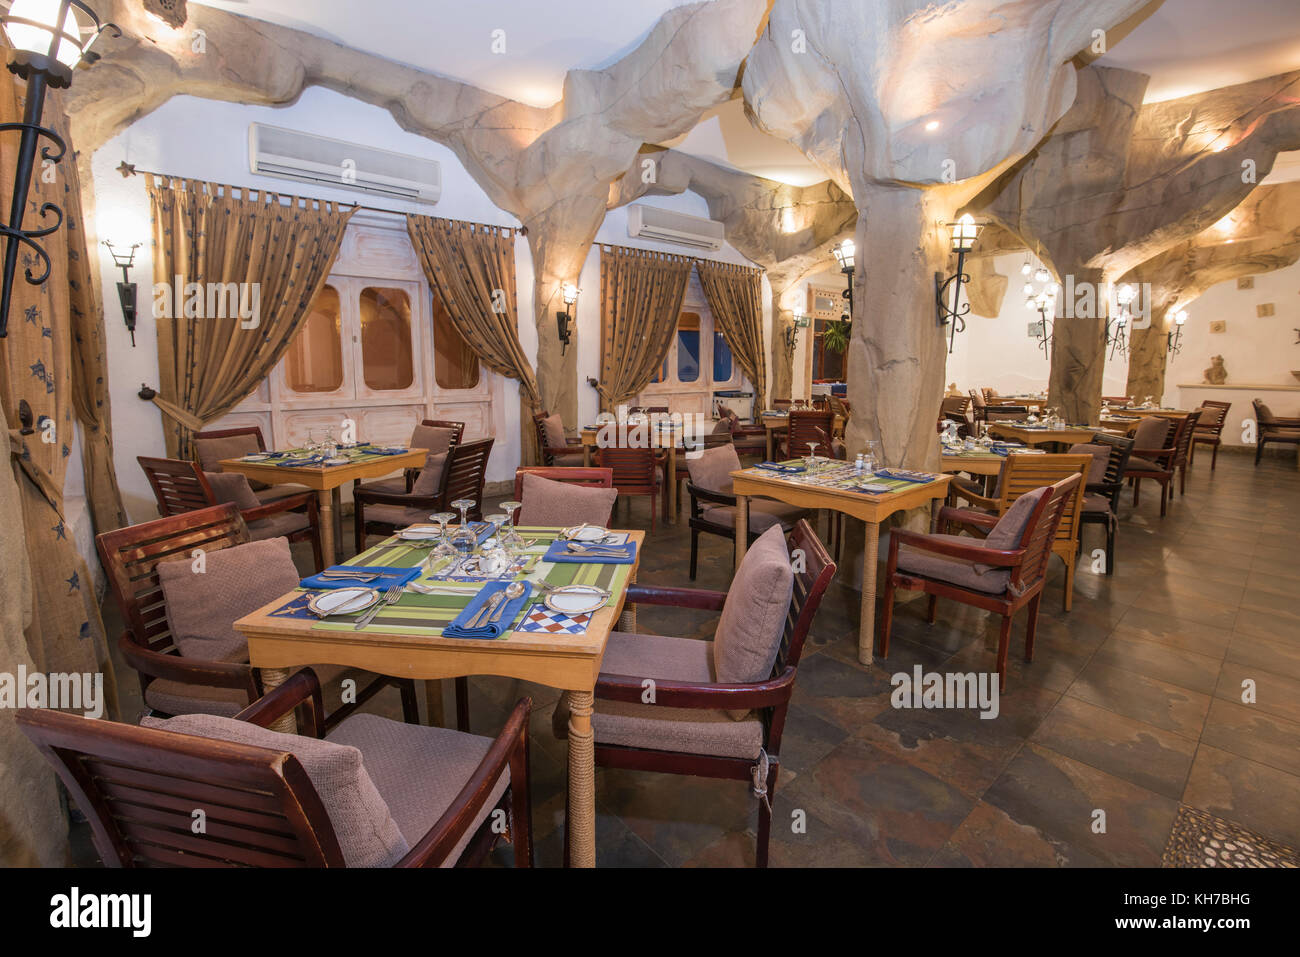 Interior Design Of A Luxury Hotel Restaurant Dining Area With Ornate Stock Photo Alamy